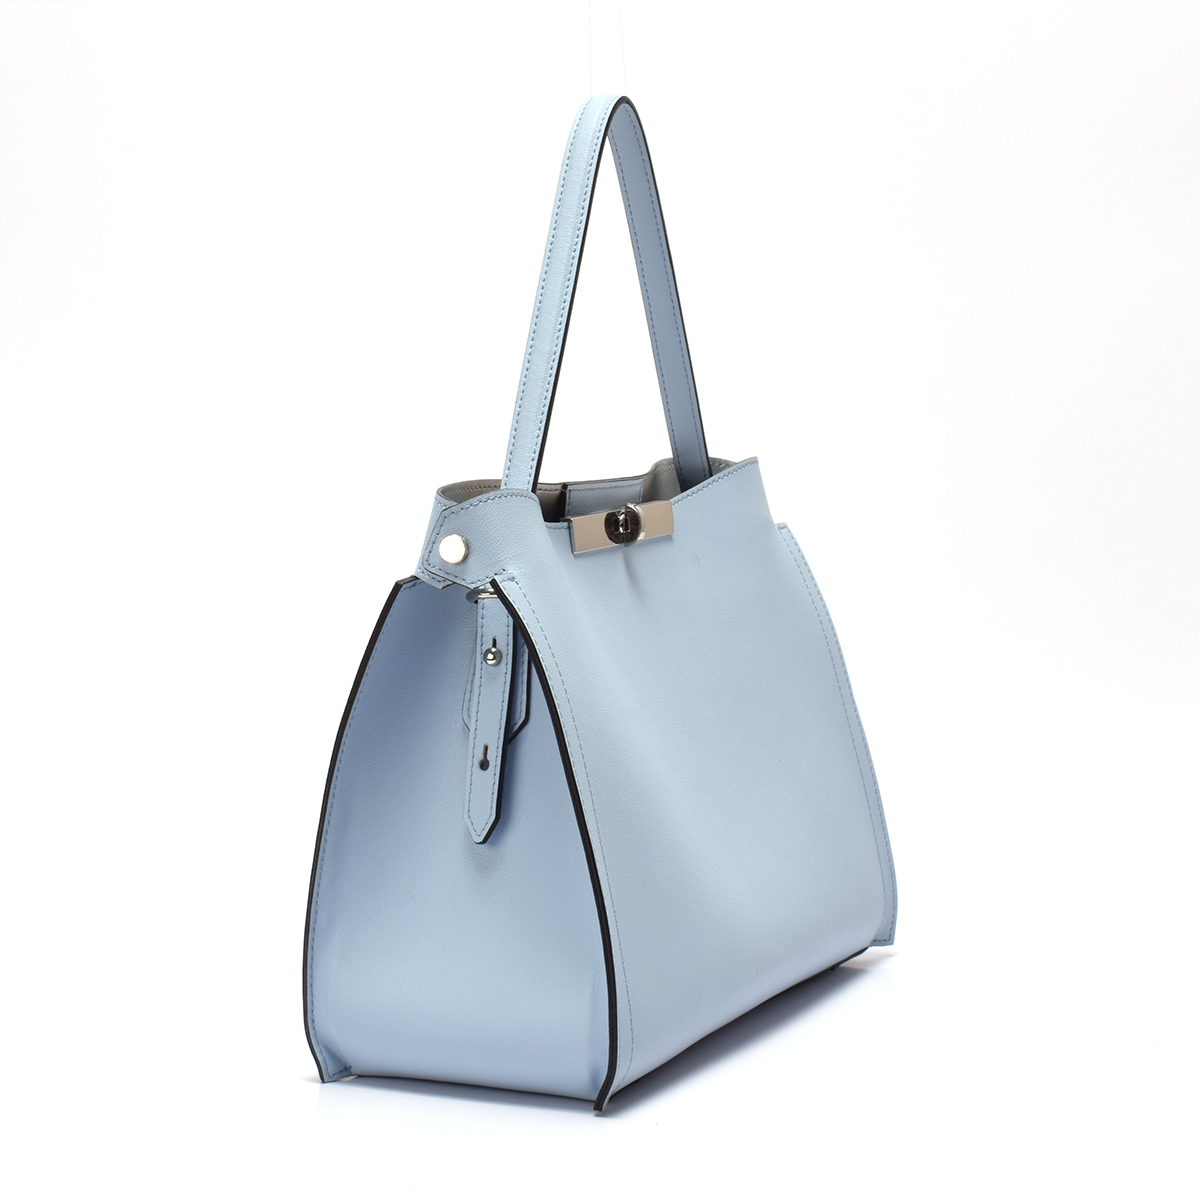 Sanlly High-quality women's bags online shopping company for women-1